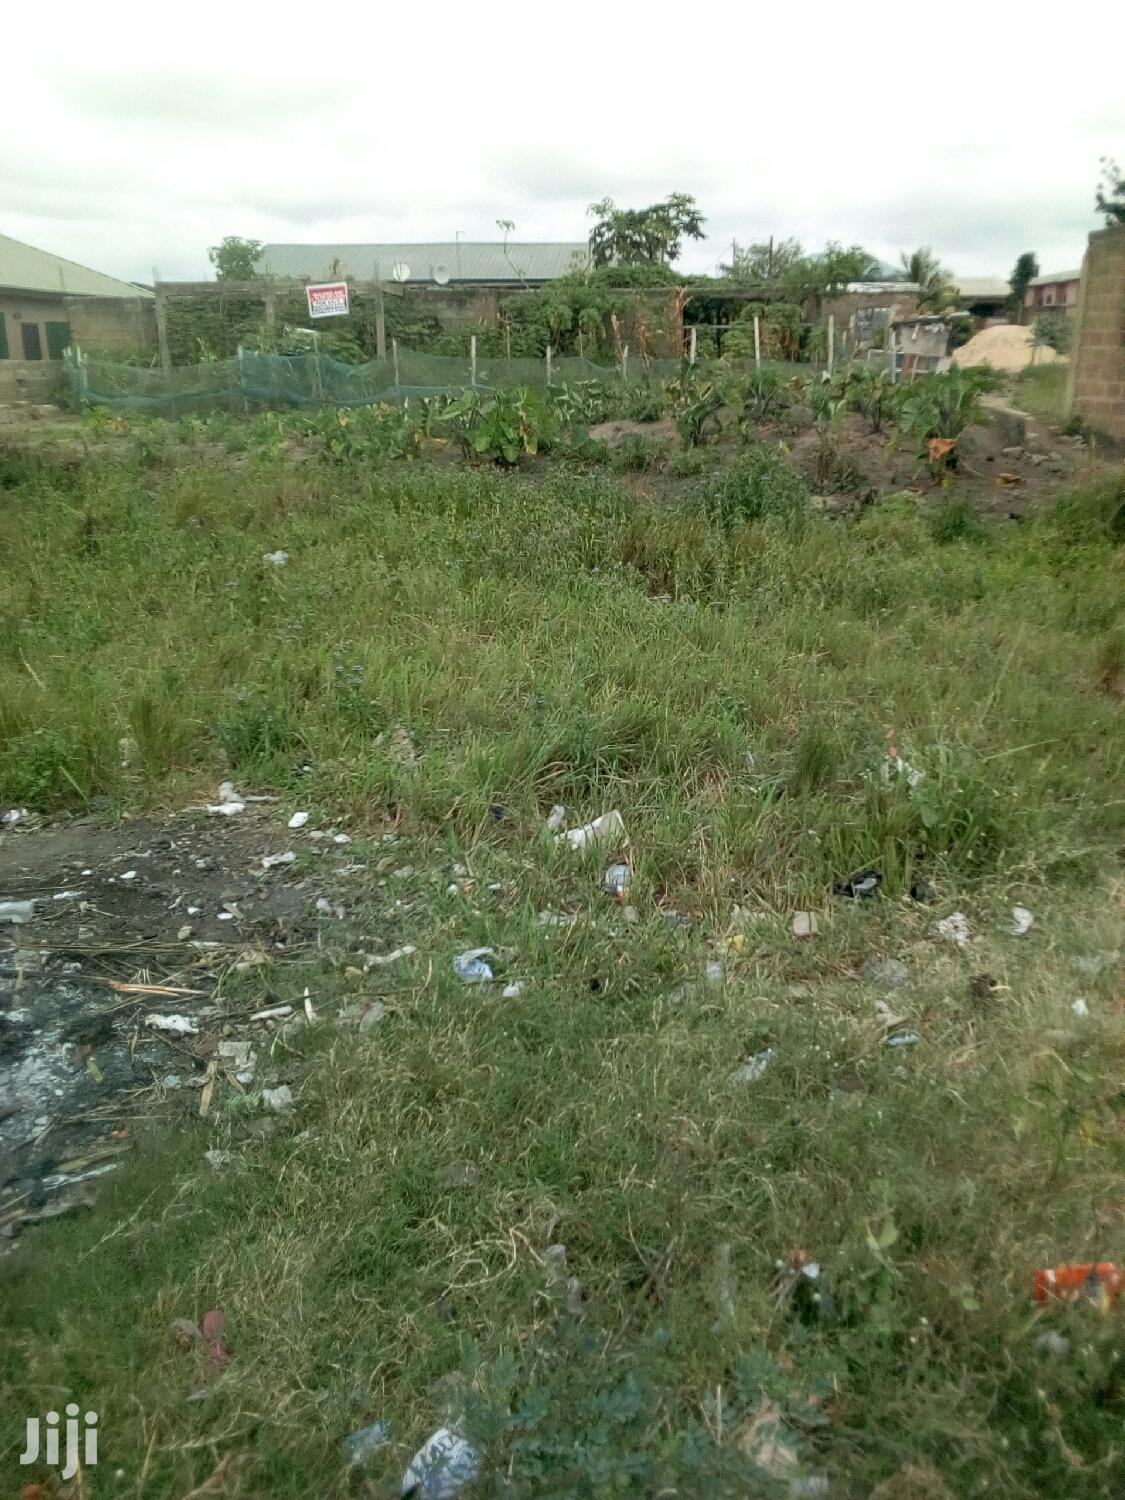 5 Bedroom Uncompleted Building For Sale At Kasoa Winger Area | Houses & Apartments For Sale for sale in Gomoa East, Central Region, Ghana